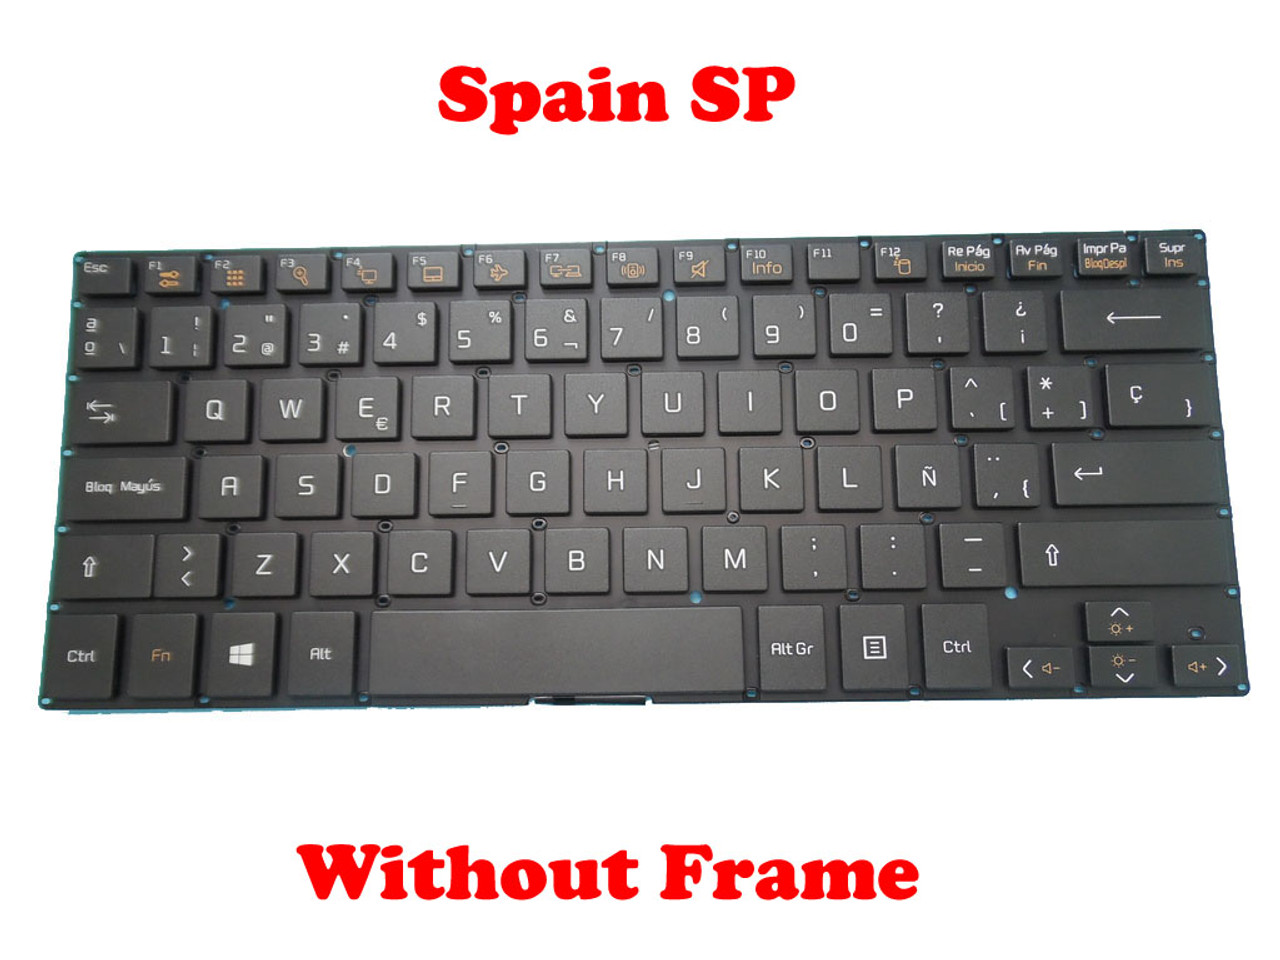 Laptop Keyboard for LG 14U360 14U360-E 14U360-L 14UD360 14UD360-L LG14U36 Black KR Korea